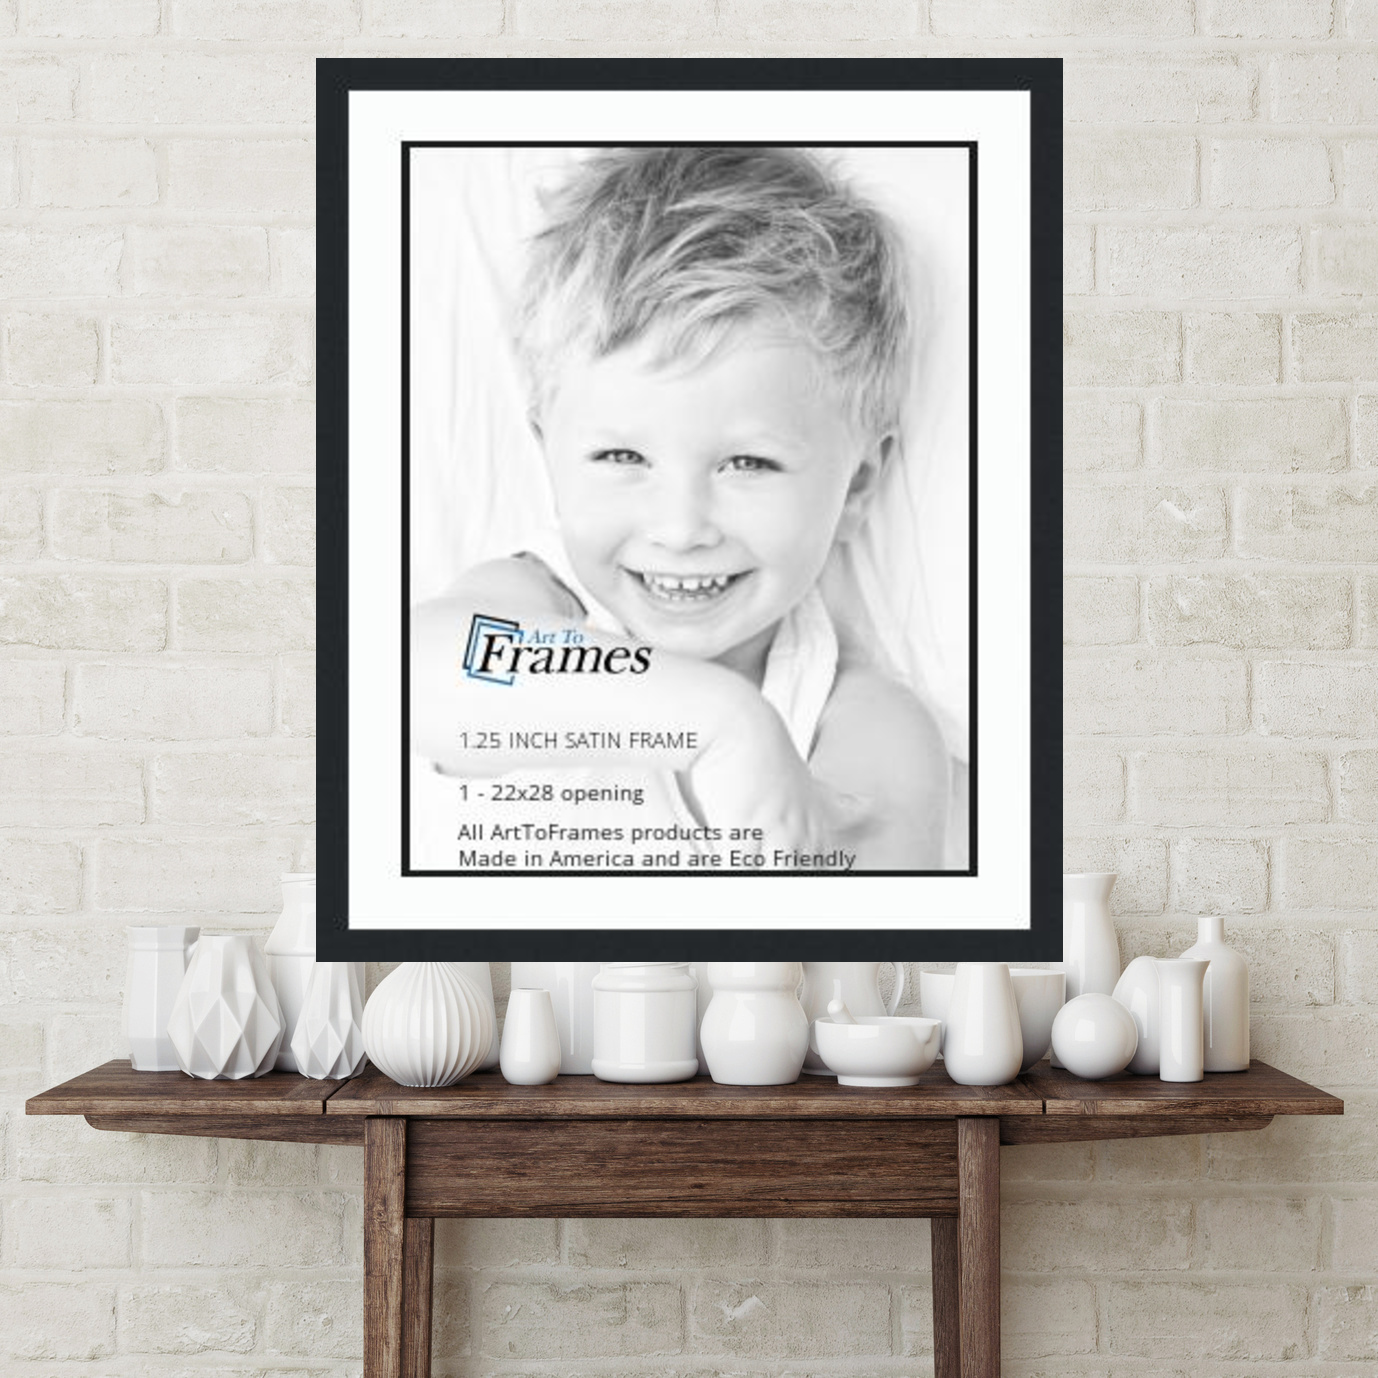 Awesome 22x28 Frame With Mat Embellishment - Framed Art Ideas ...